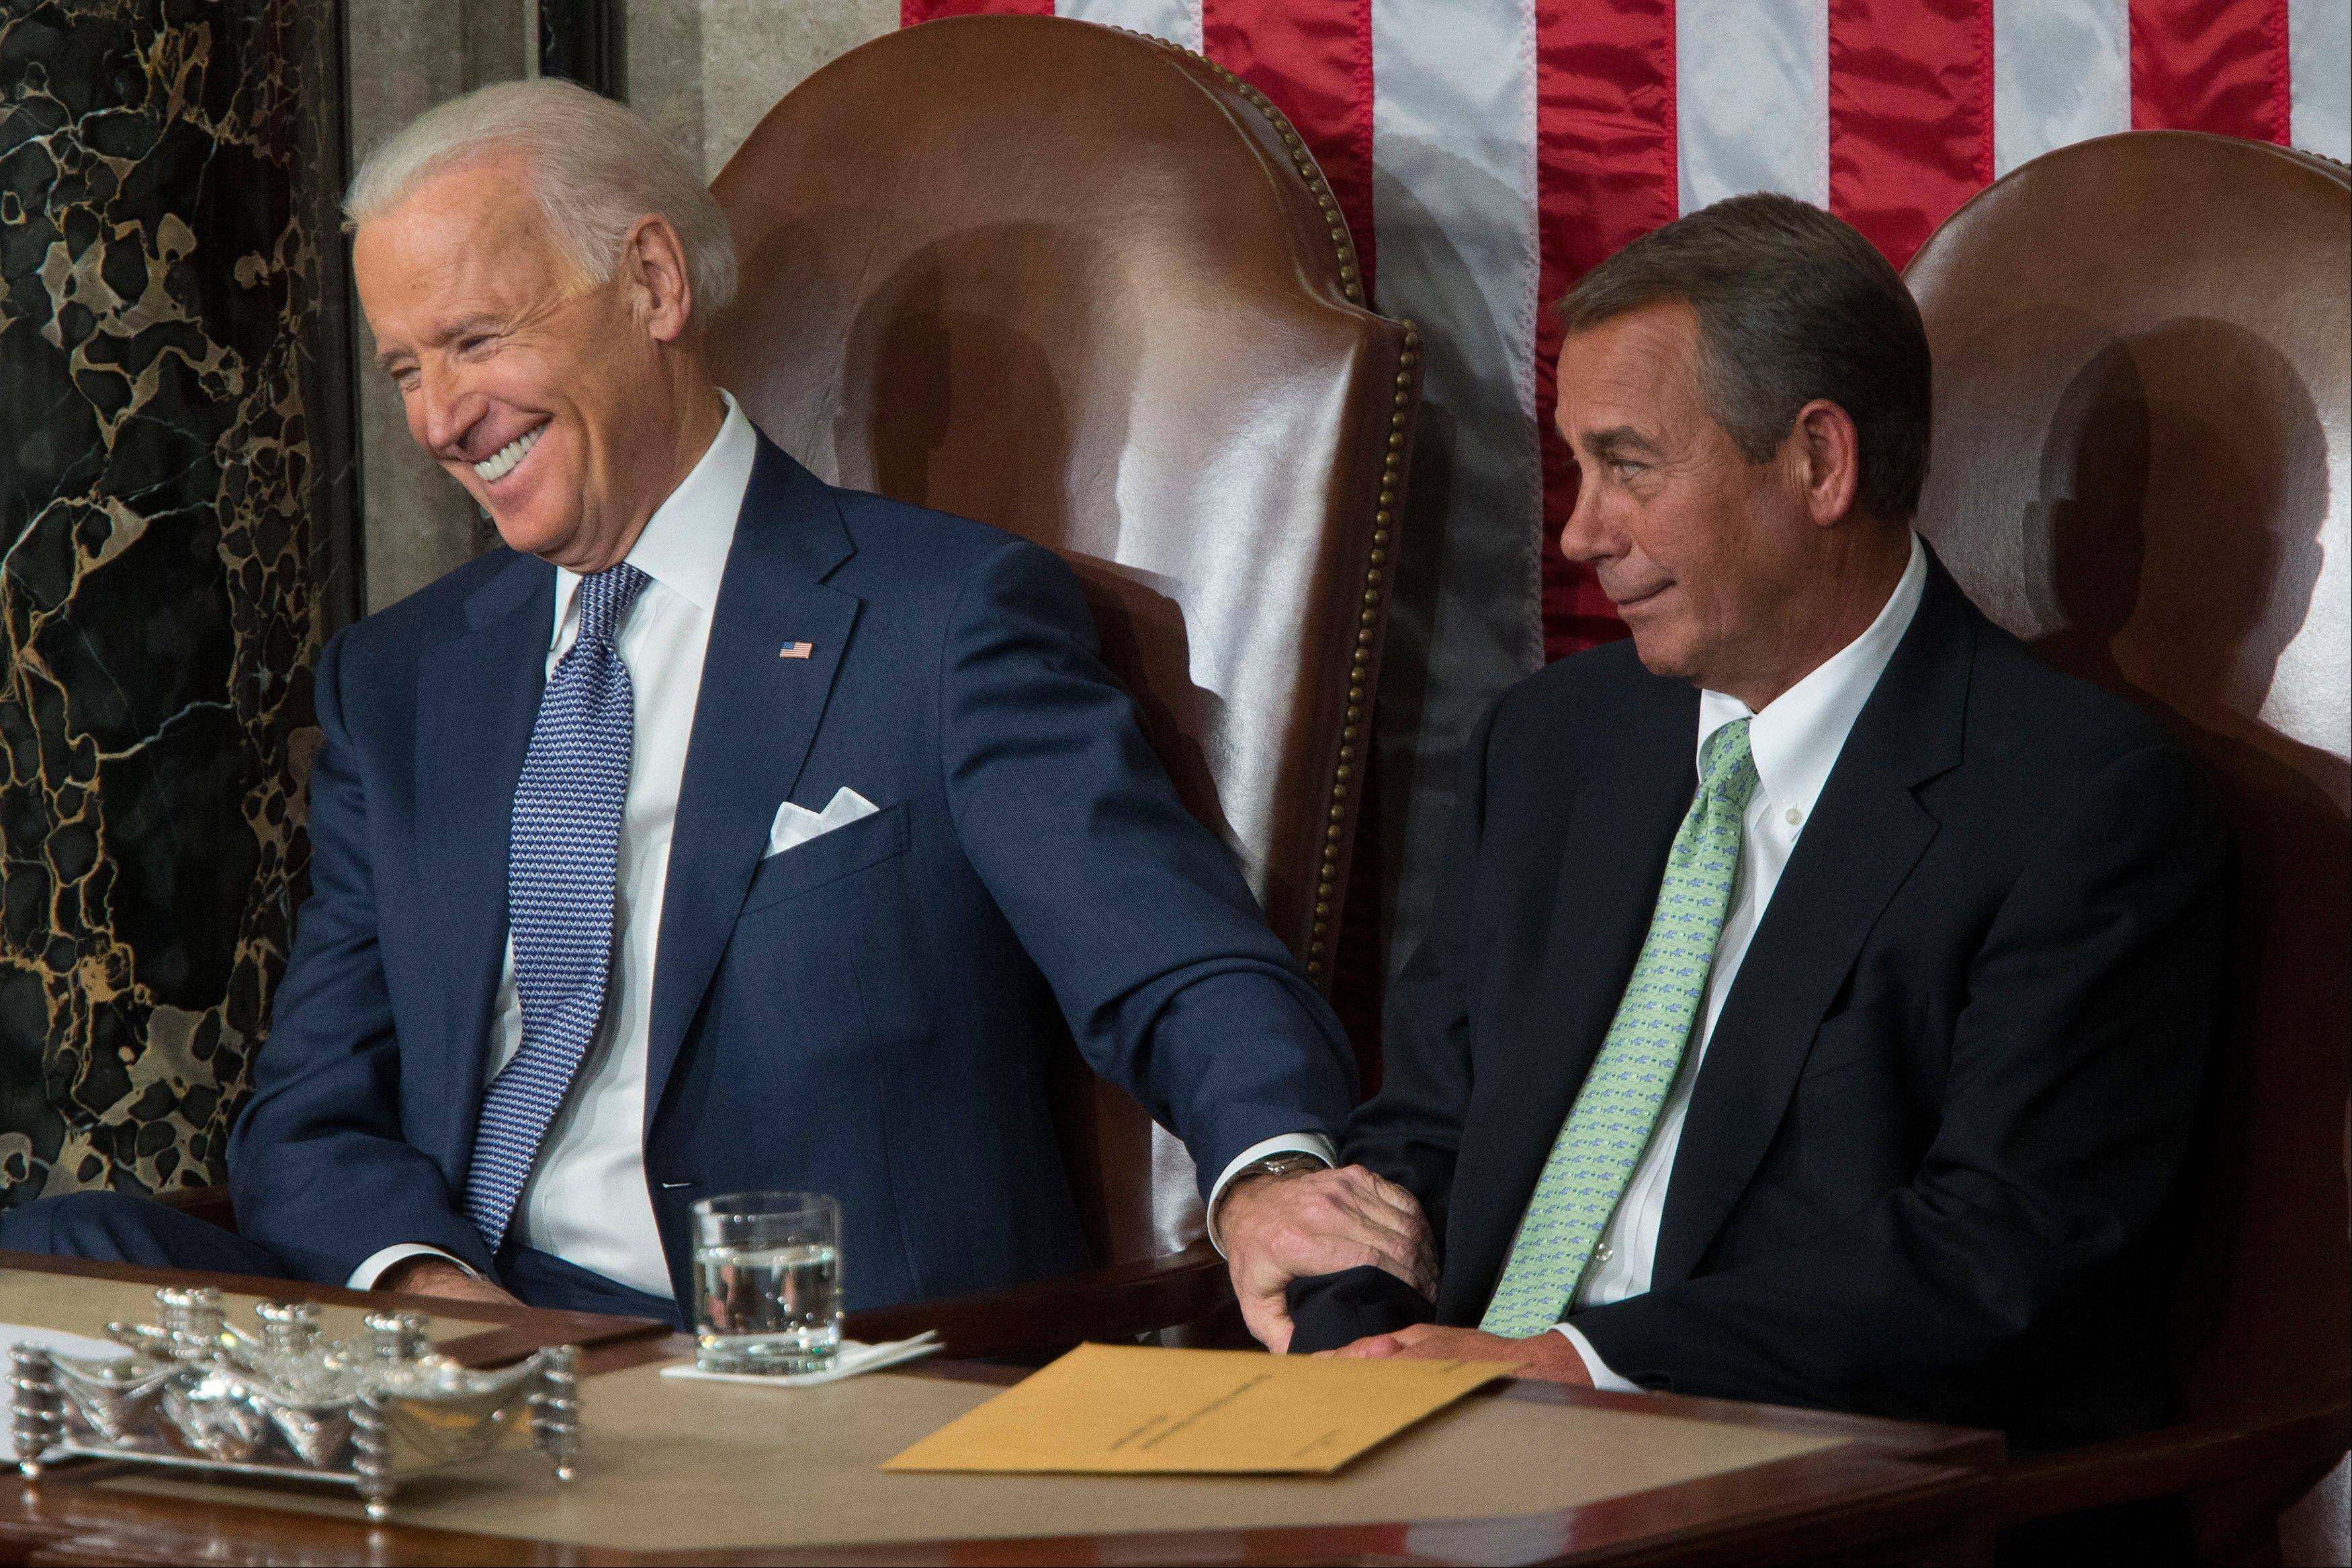 Joseph �Joe� Biden, U.S. vice president, left, holds onto House Speaker John Boehner, a Republican from Ohio, as U.S. President Barack Obama, not pictured, delivers the State of the Union address to a joint session of Congress at the Capitol in Washington, D.C., U.S., on Tuesday, Jan. 28, 2014.